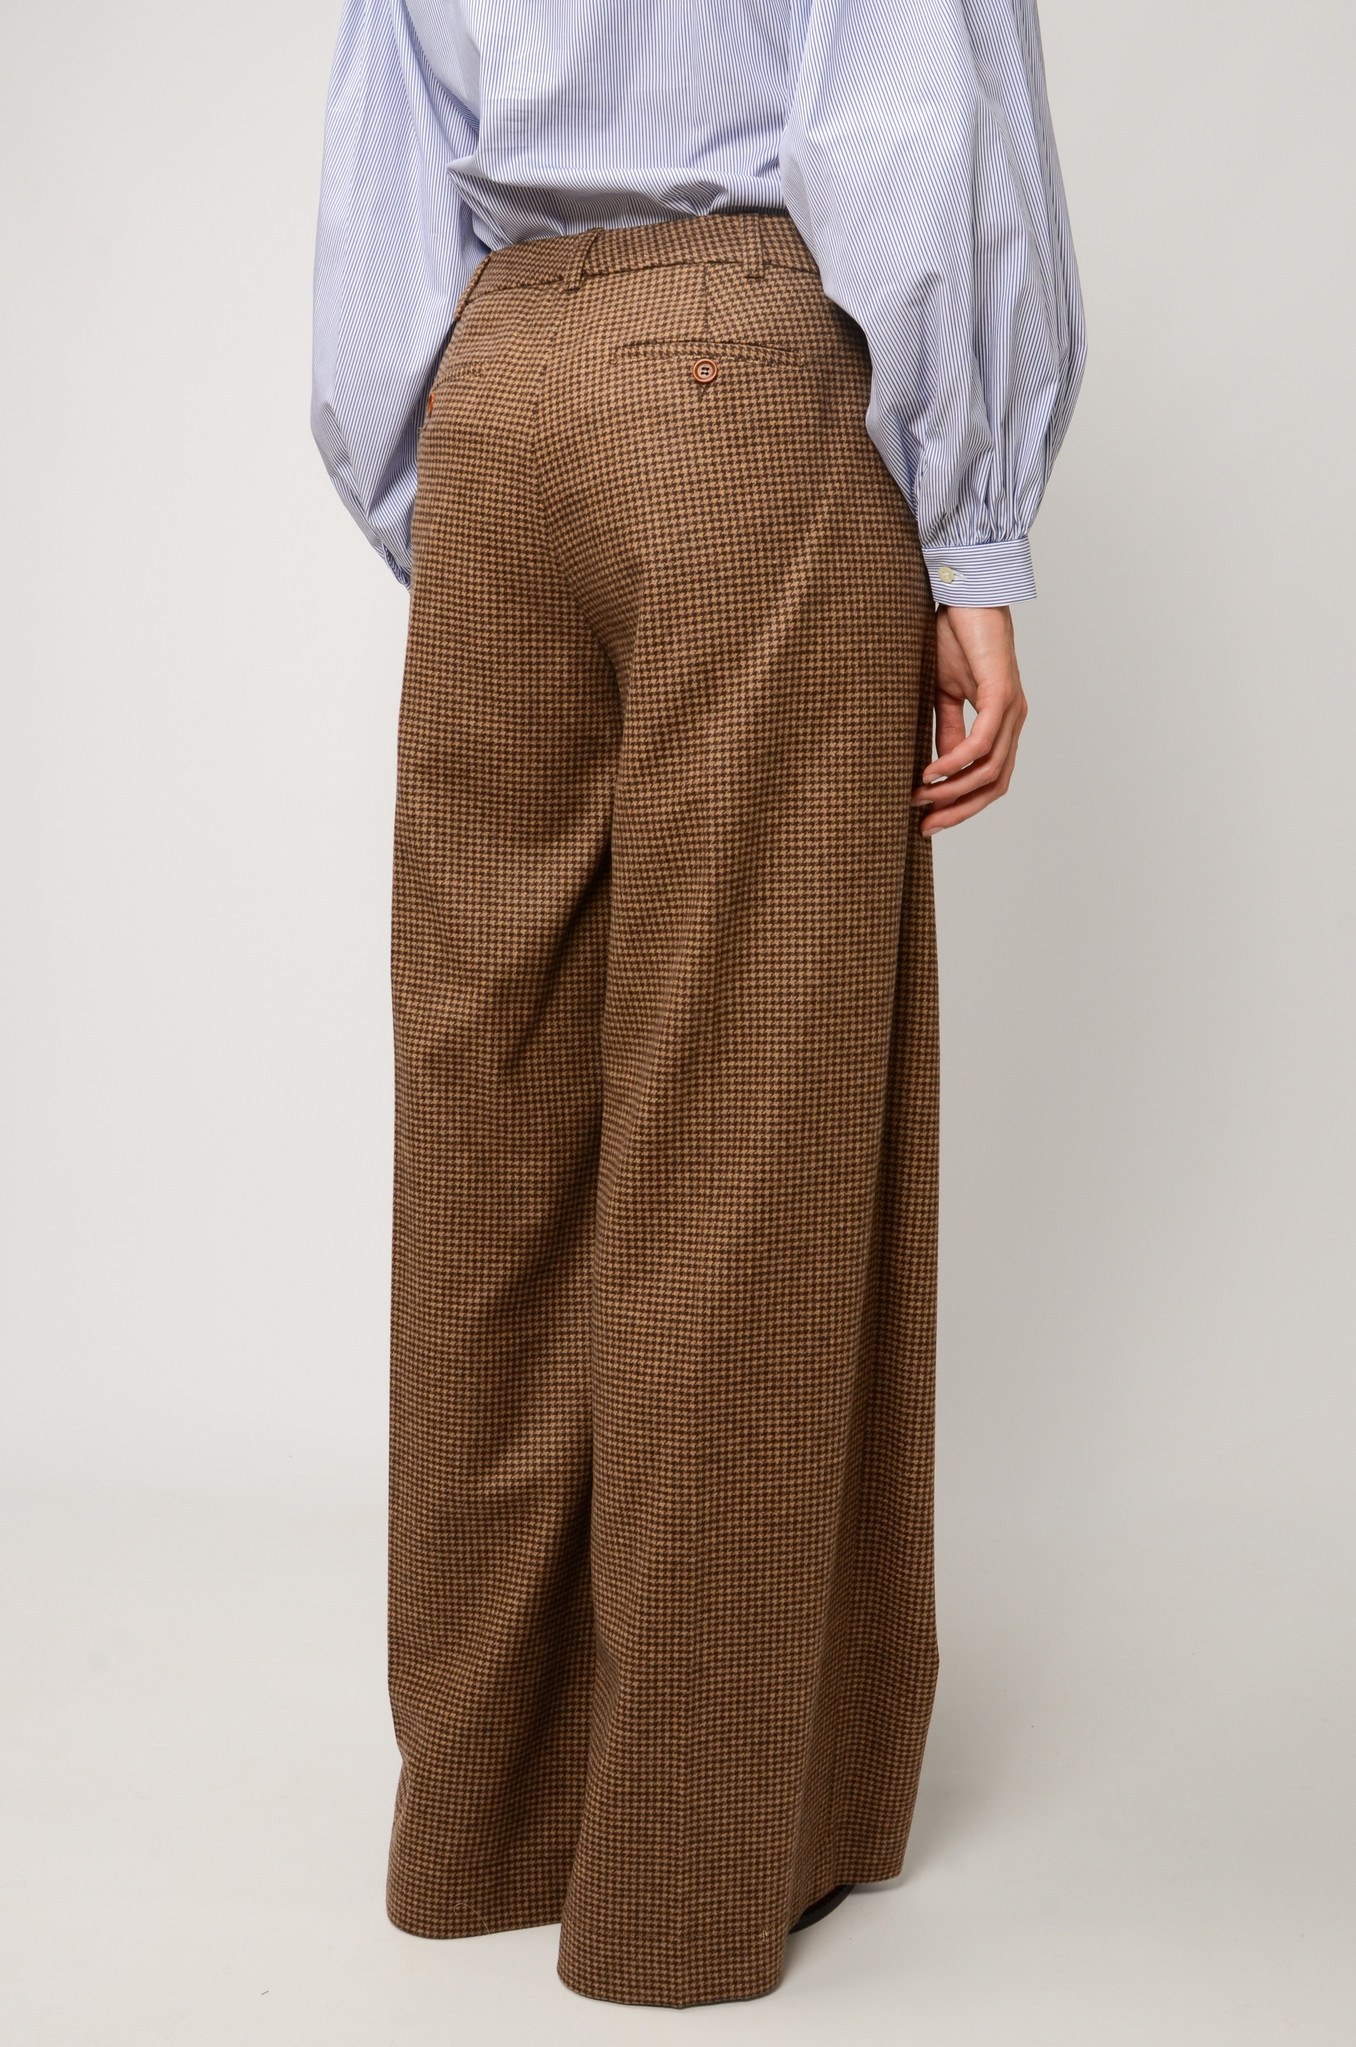 KATHERINE PANTS IN CHECKERED WOOL-4